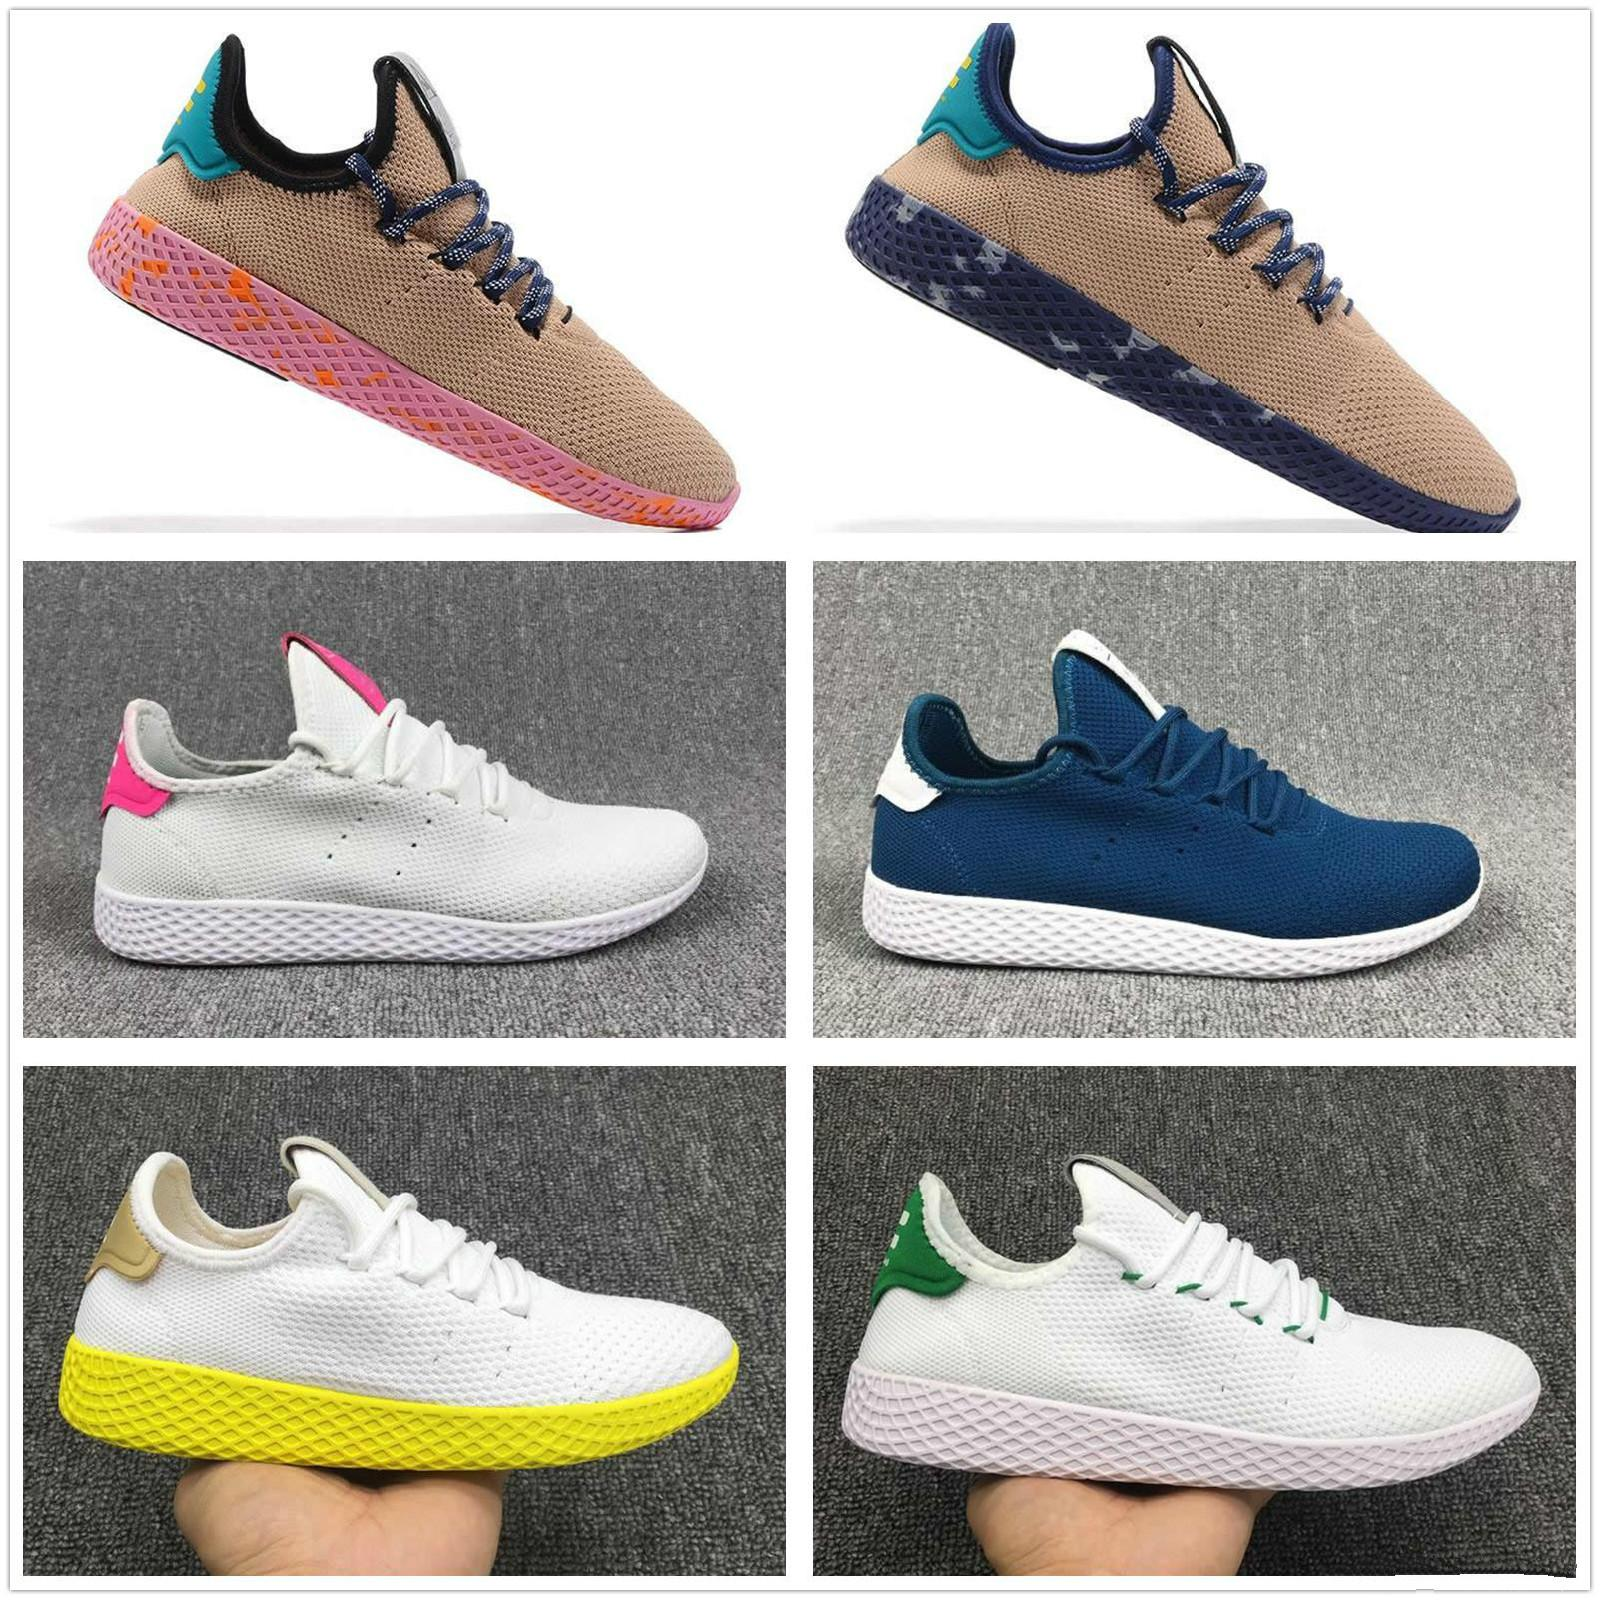 best website 0a946 d342e 2018 Newest Pharrell Williams X Stan Smith Tennis HU Primeknit Men Women  Shoes Sneaker Breathable Boost Runner Sports Shoes EUR 36 45 Casual Shoes  For Men ...